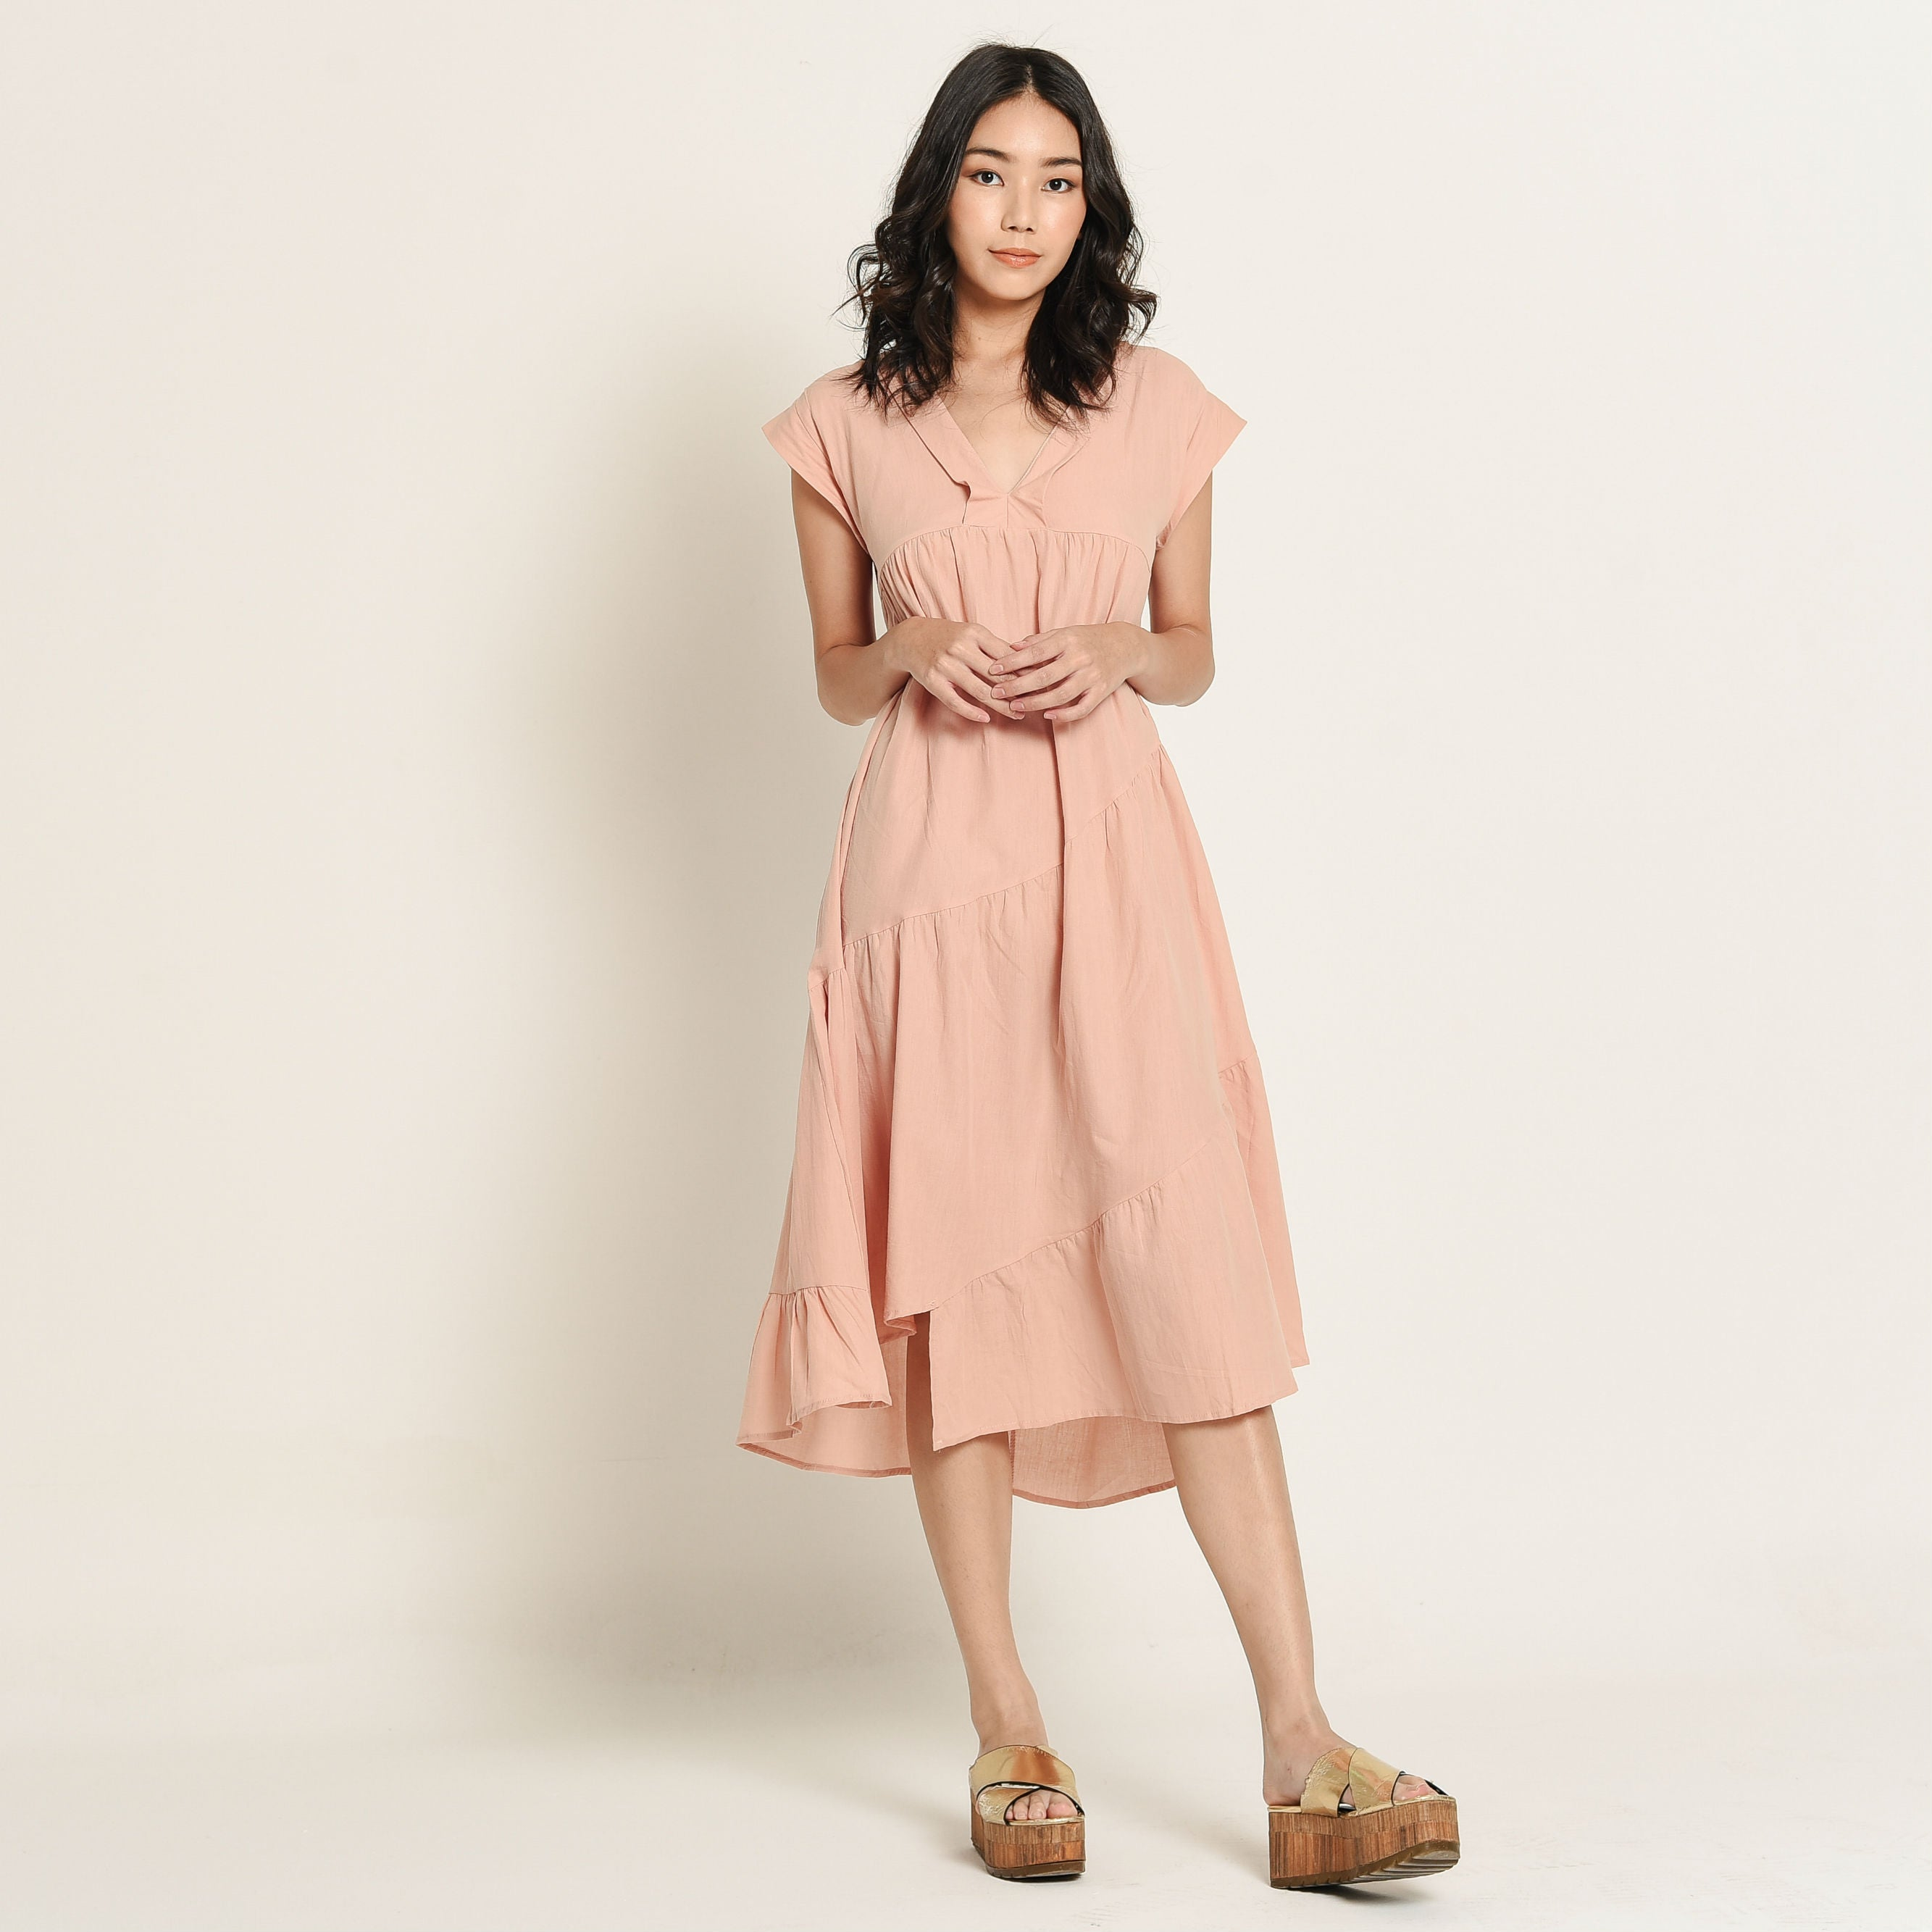 Tina Blush Peach Dress